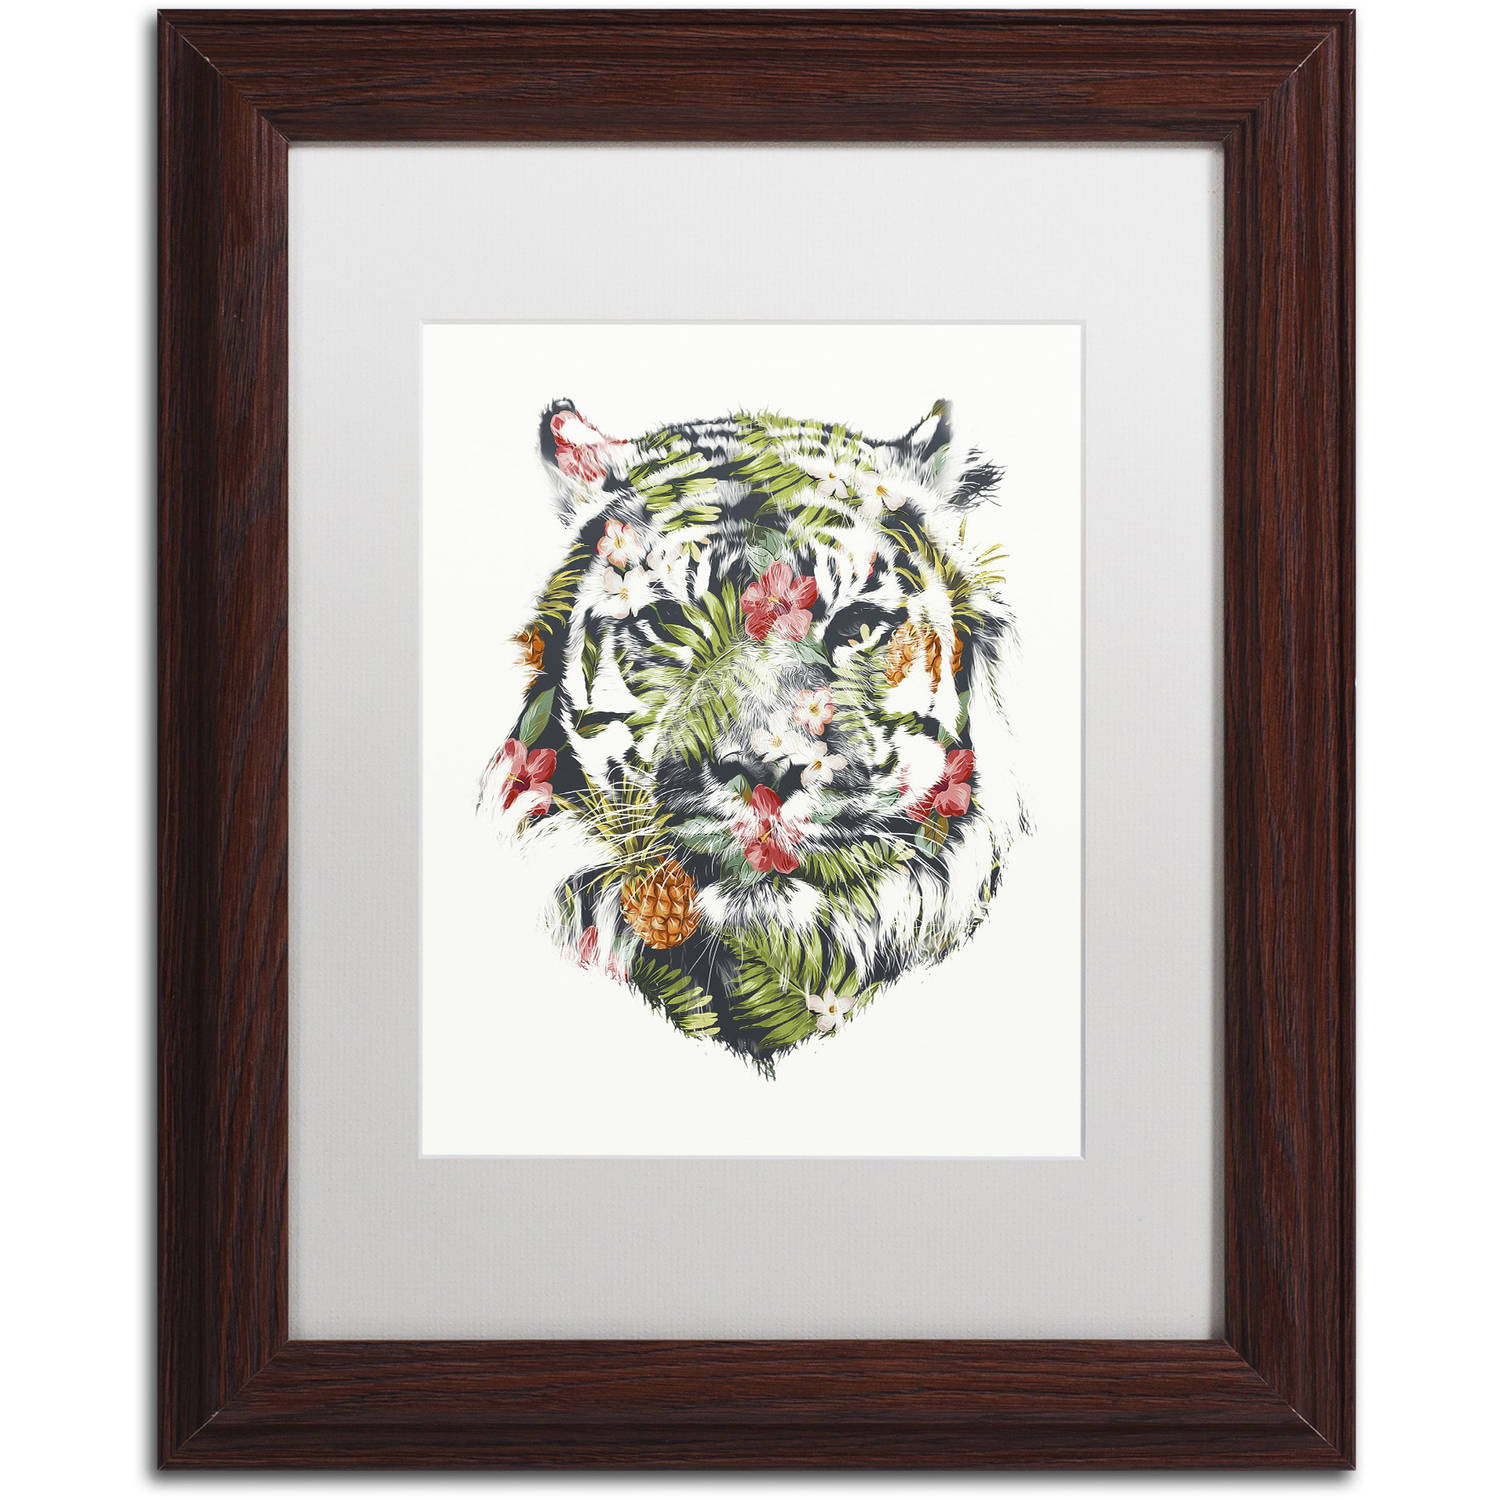 Trademark Fine Art 'Tropical Tiger' Canvas Art by Robert Farkas, White Matte, Wood Frame